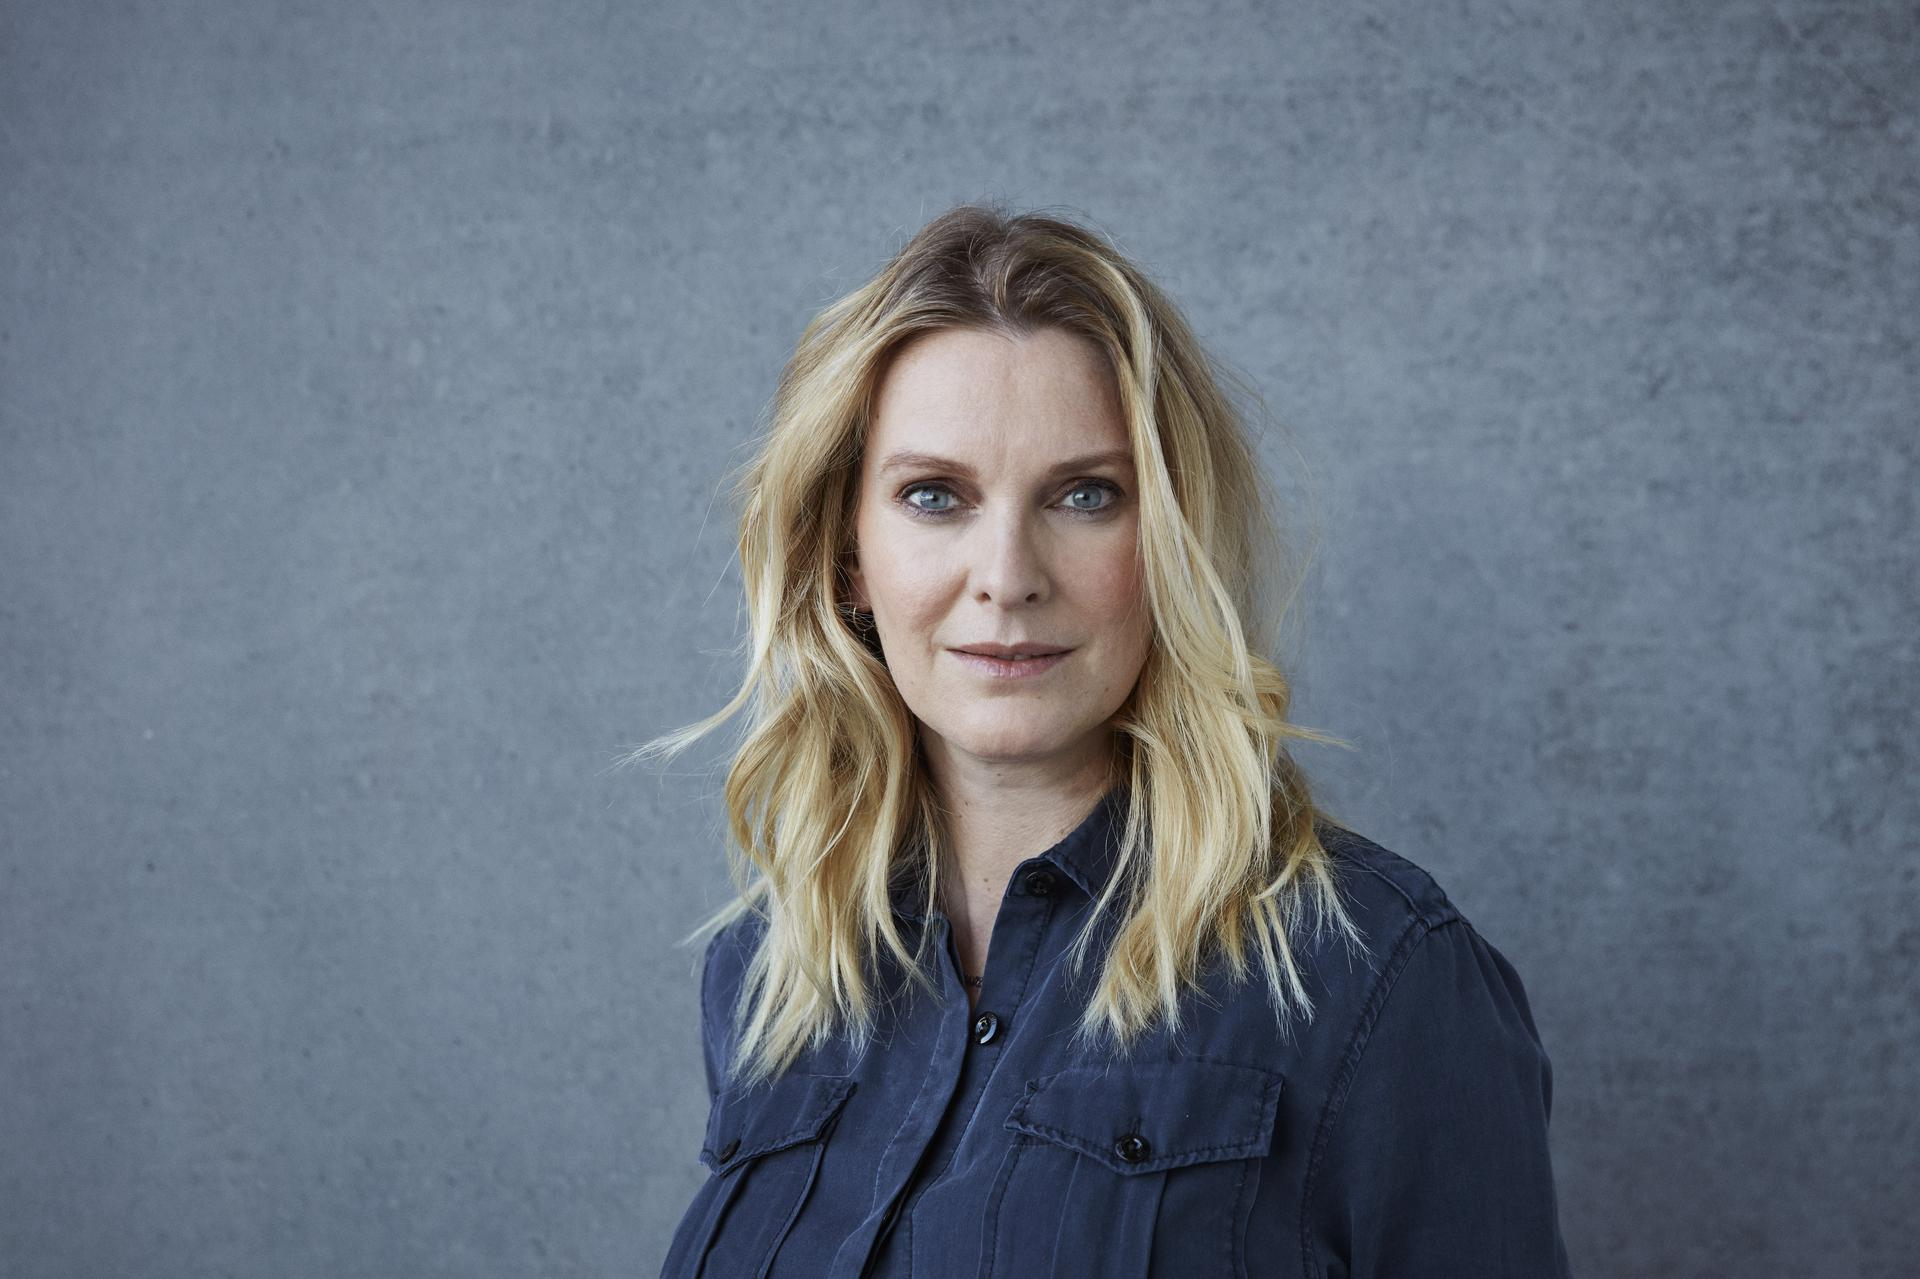 G-Star RAW Appoints Gwenda Van Vliet As New CMO